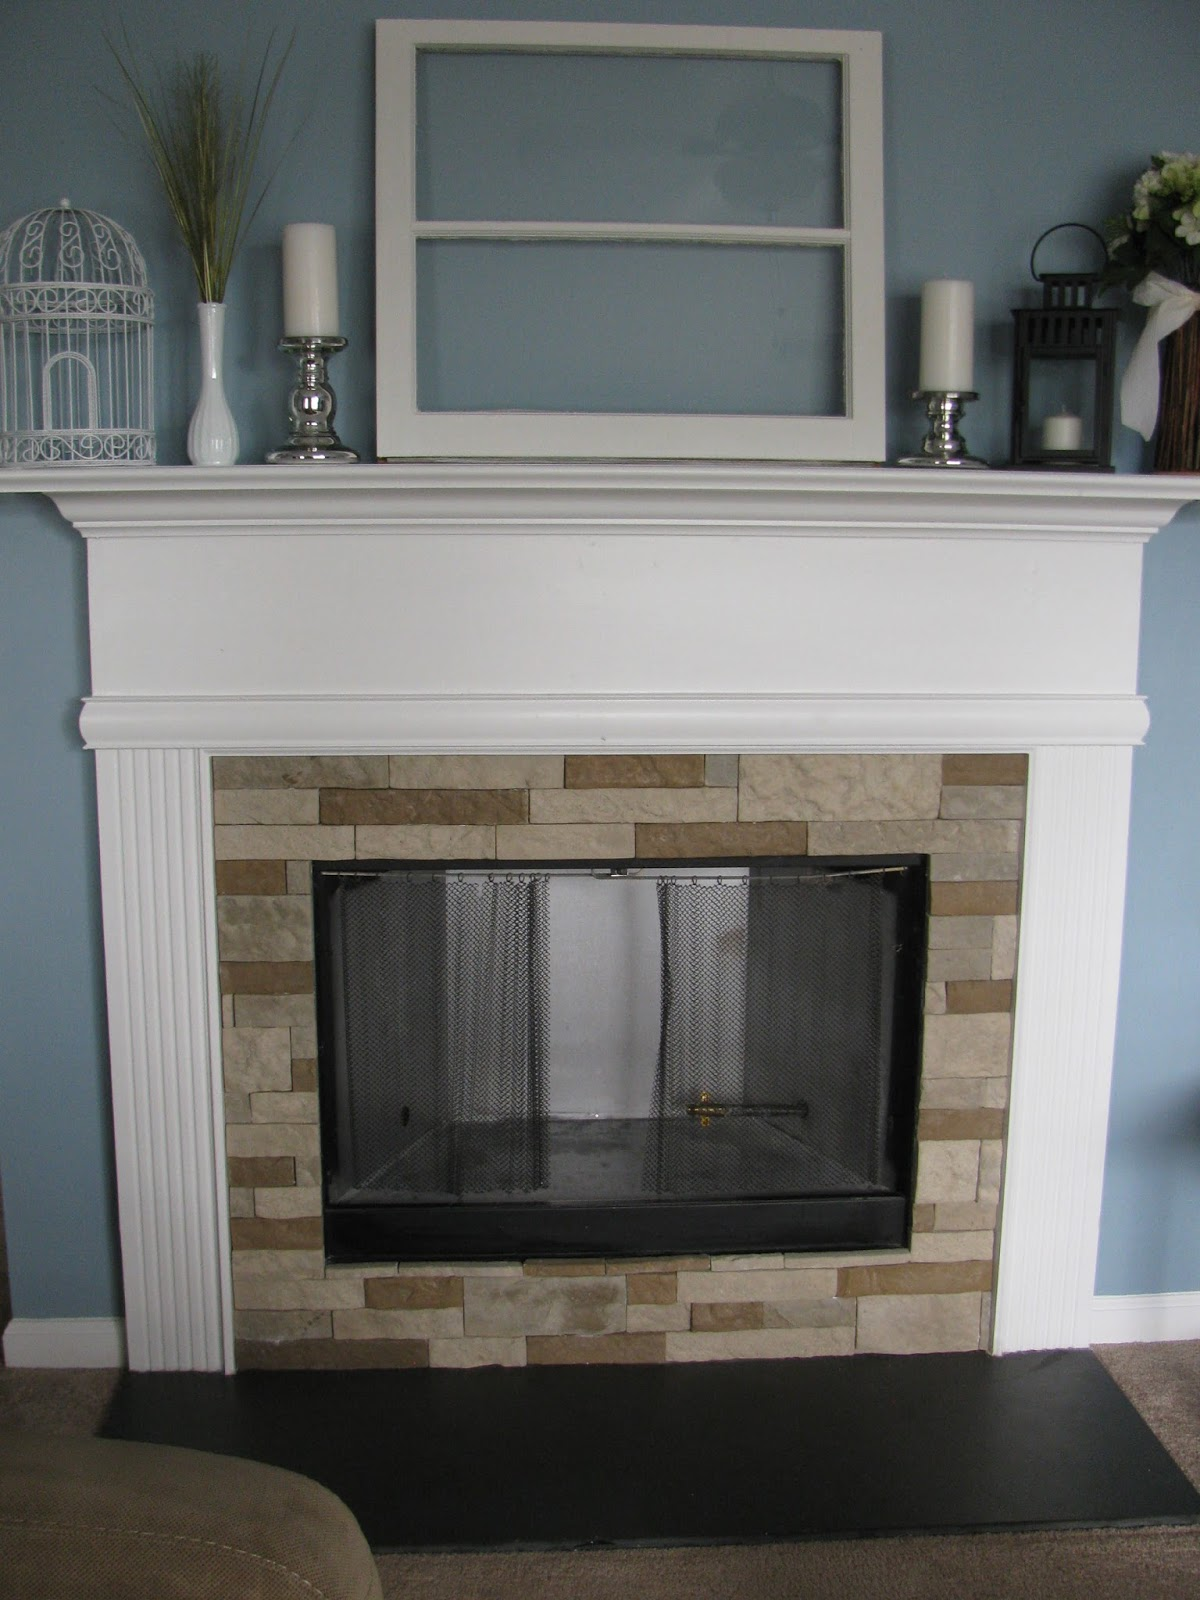 Diy Fireplace Makeover Before And After